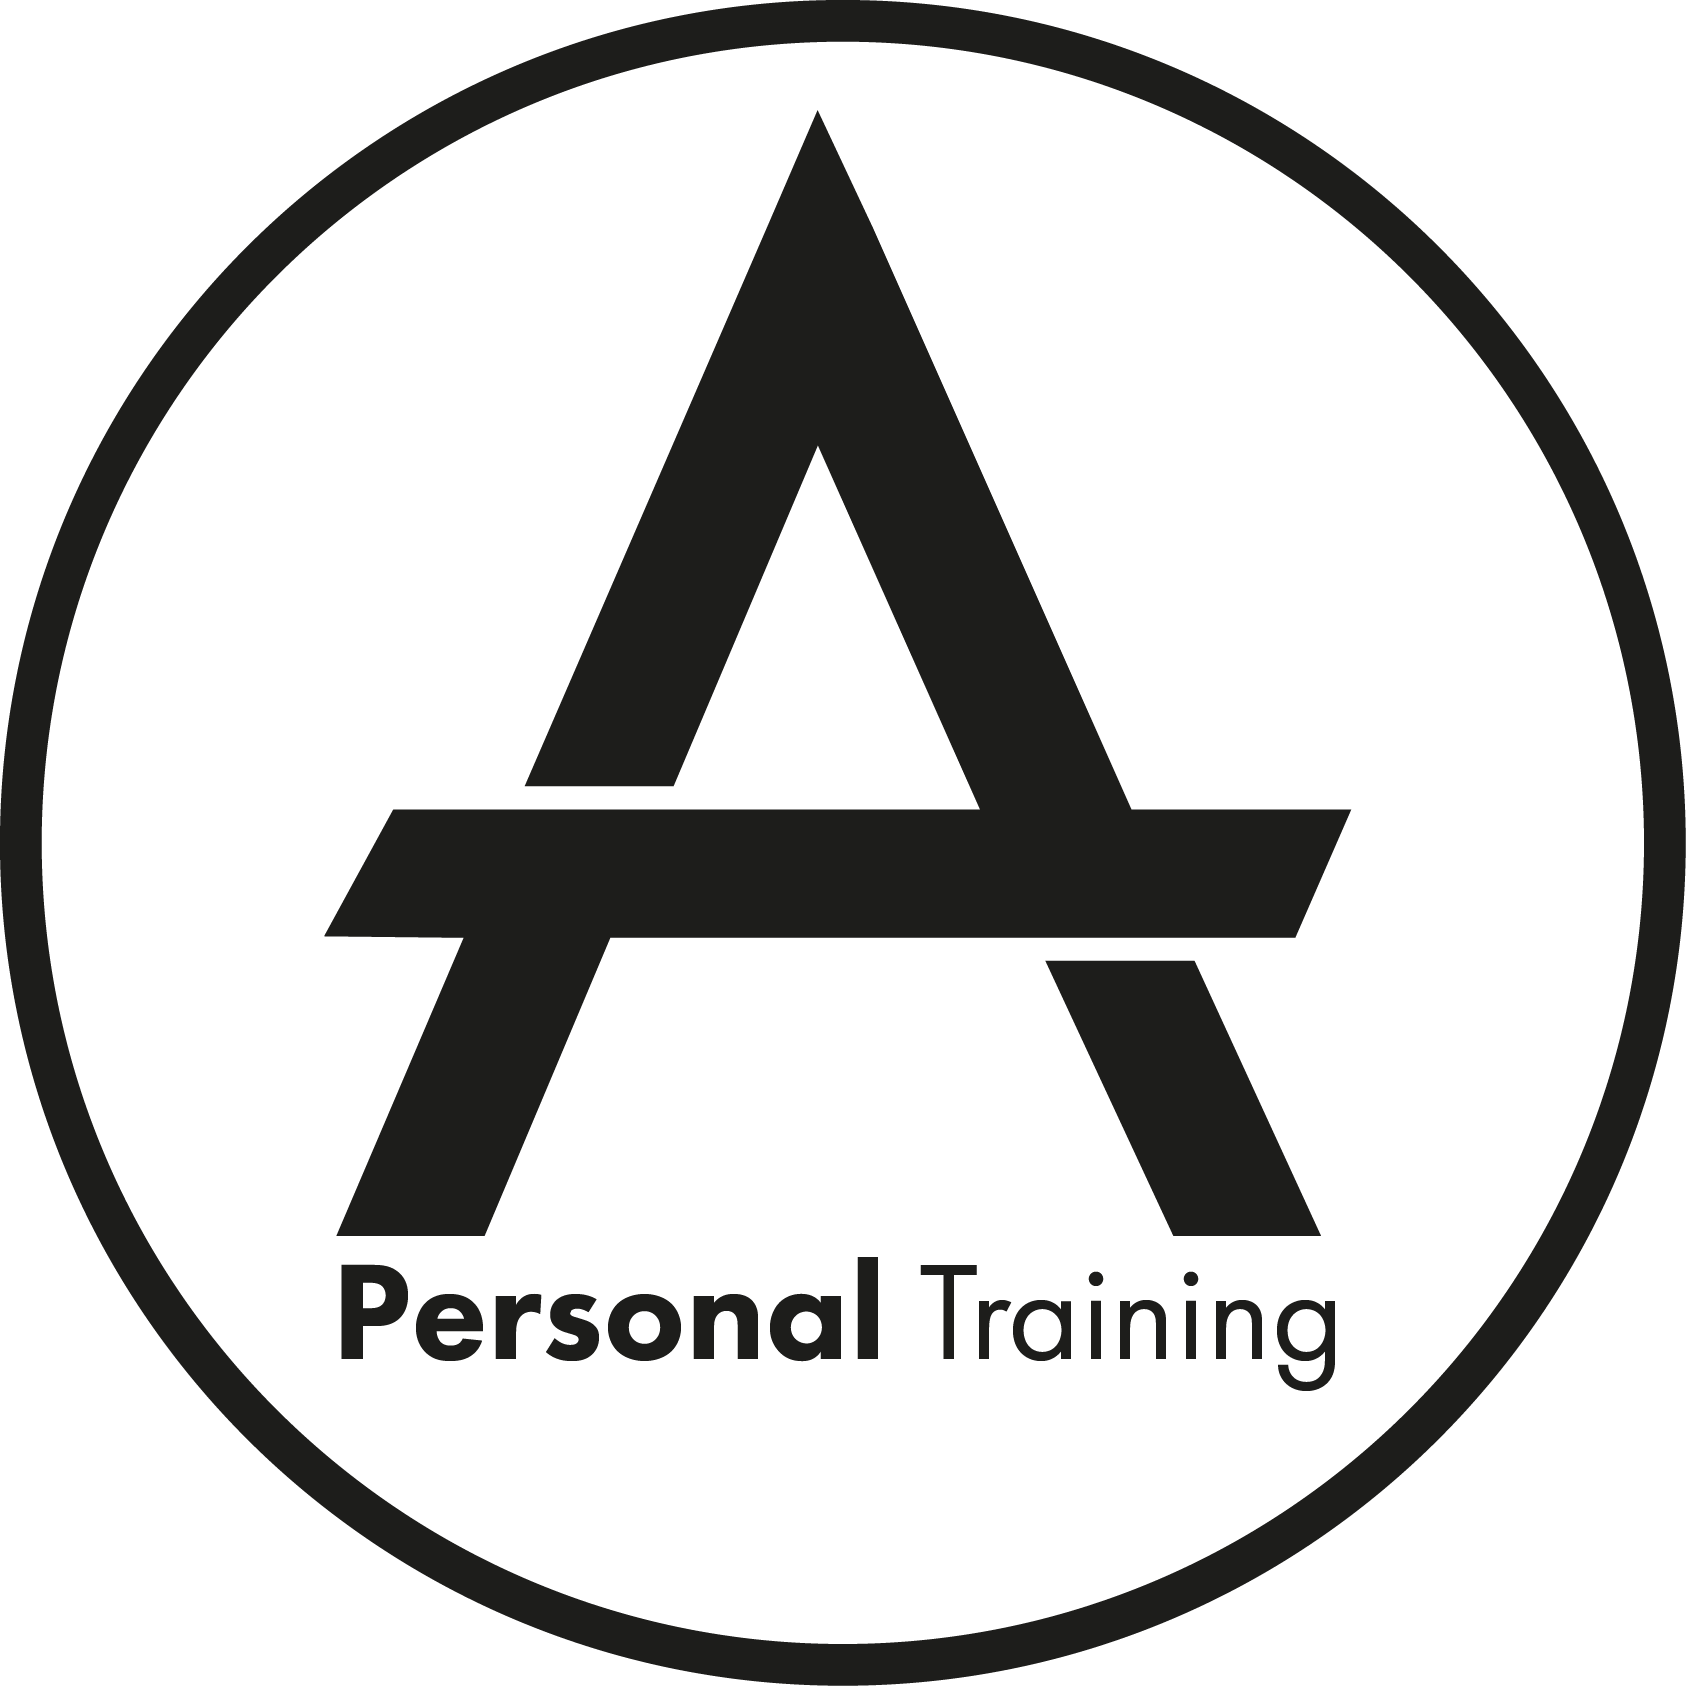 www.mijnpersonaltrainer.be